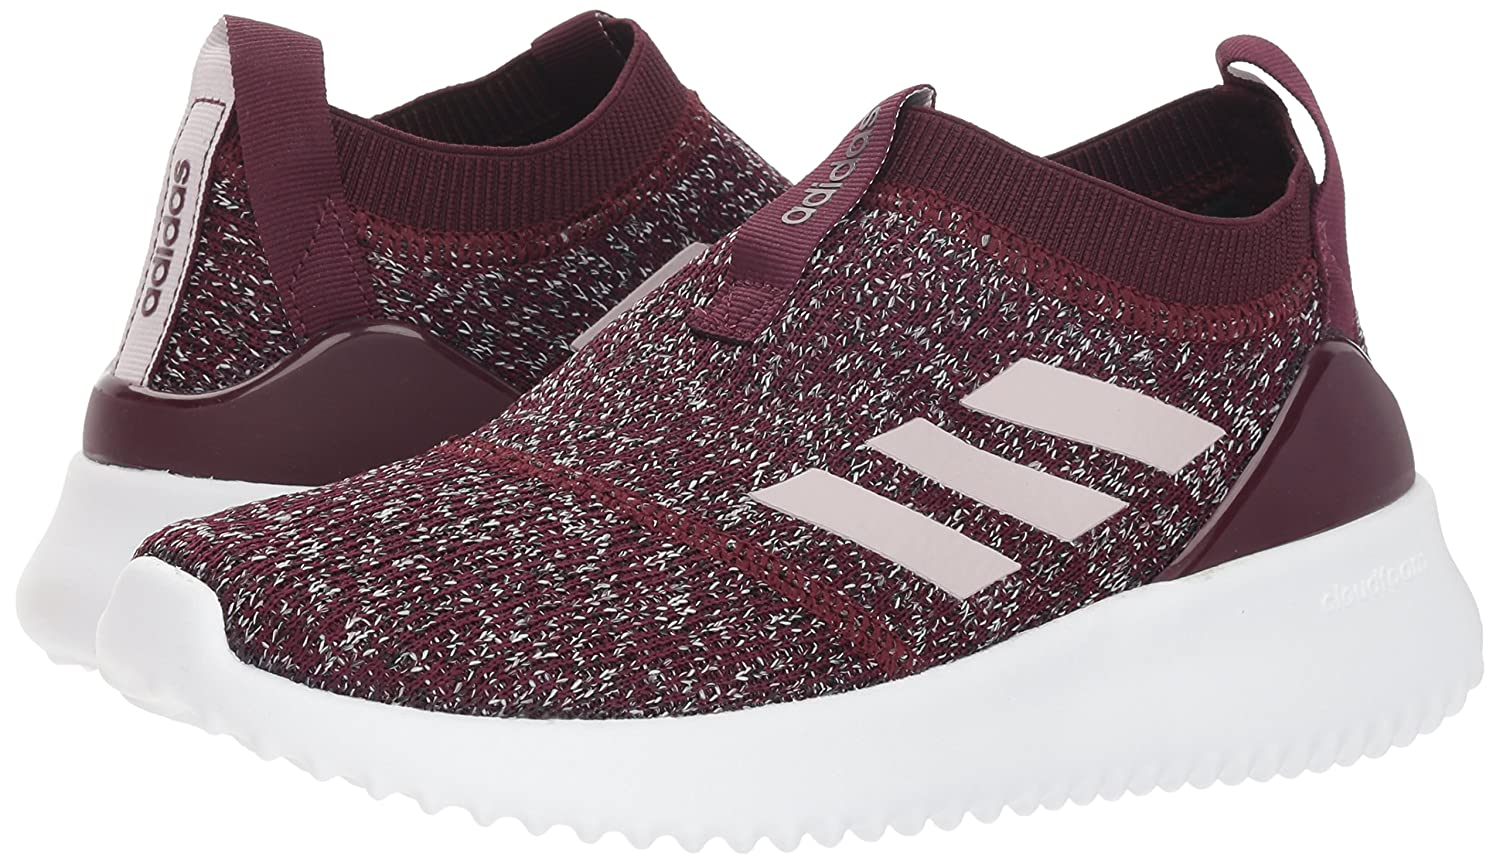 adidas Women's Ultimafusion Running Shoe Purple/White B077XCQDX5 9.5 M US|Maroon/Ice Purple/White Shoe 739574